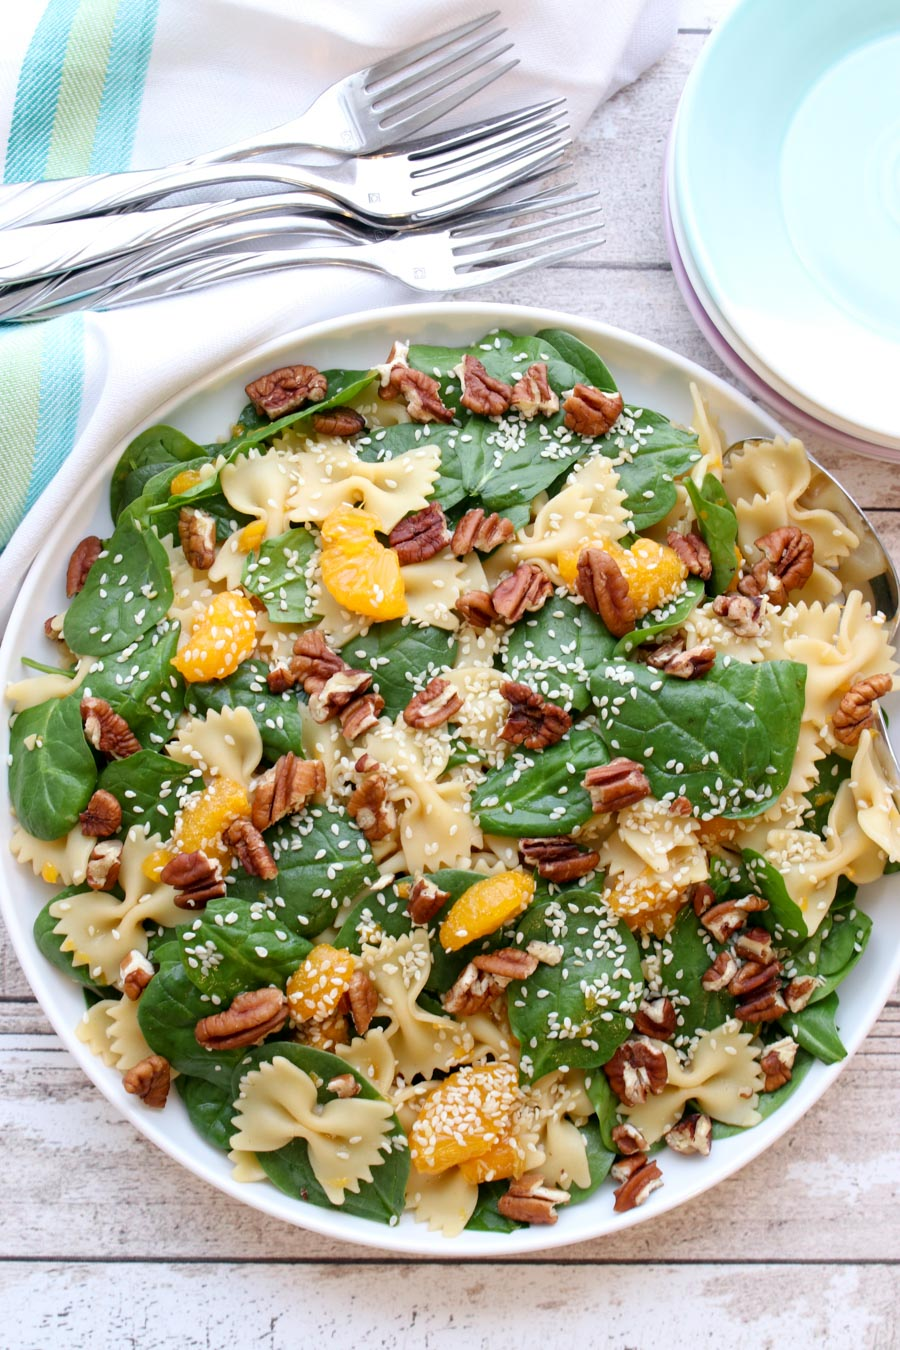 Spinach pasta salad in serving bowl